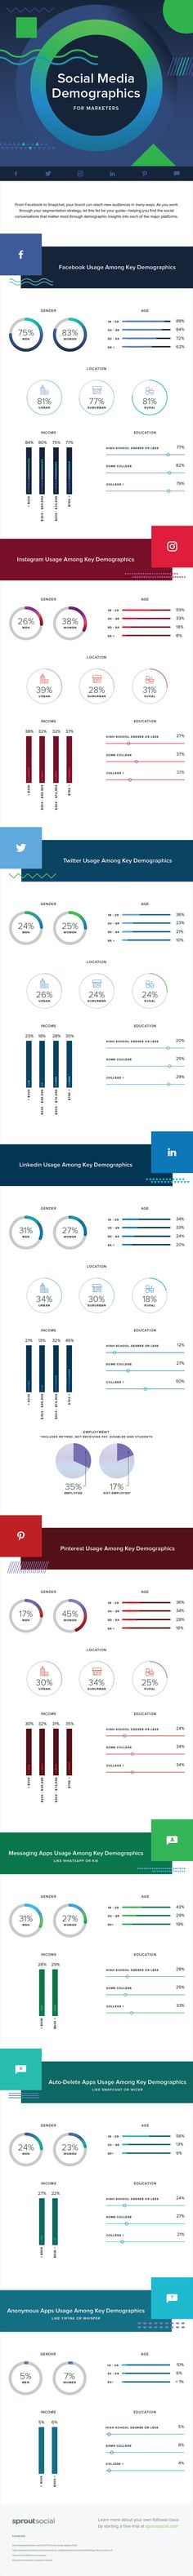 Why are Social Media demographics important? To determine which social media platforms your target audience is using! Get the scoop on this infographic. Perfect for marketing your small business!